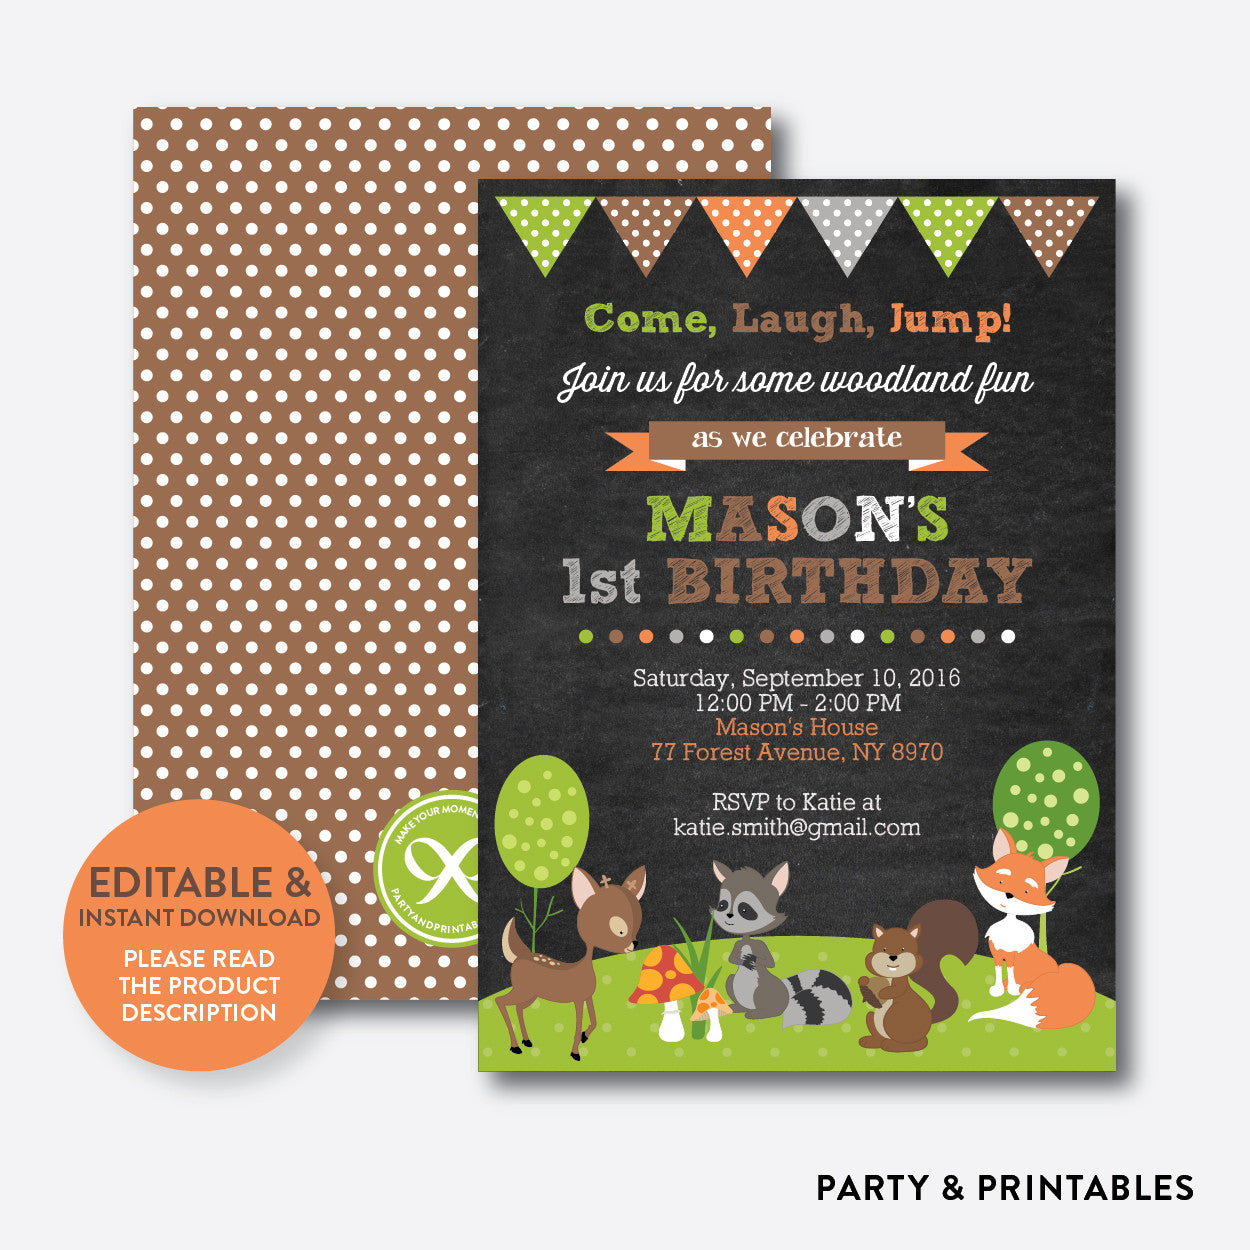 Forest Friends Chalkboard Kids Birthday Invitation / Editable / Instant Download (CKB.27), invitation - Party and Printables